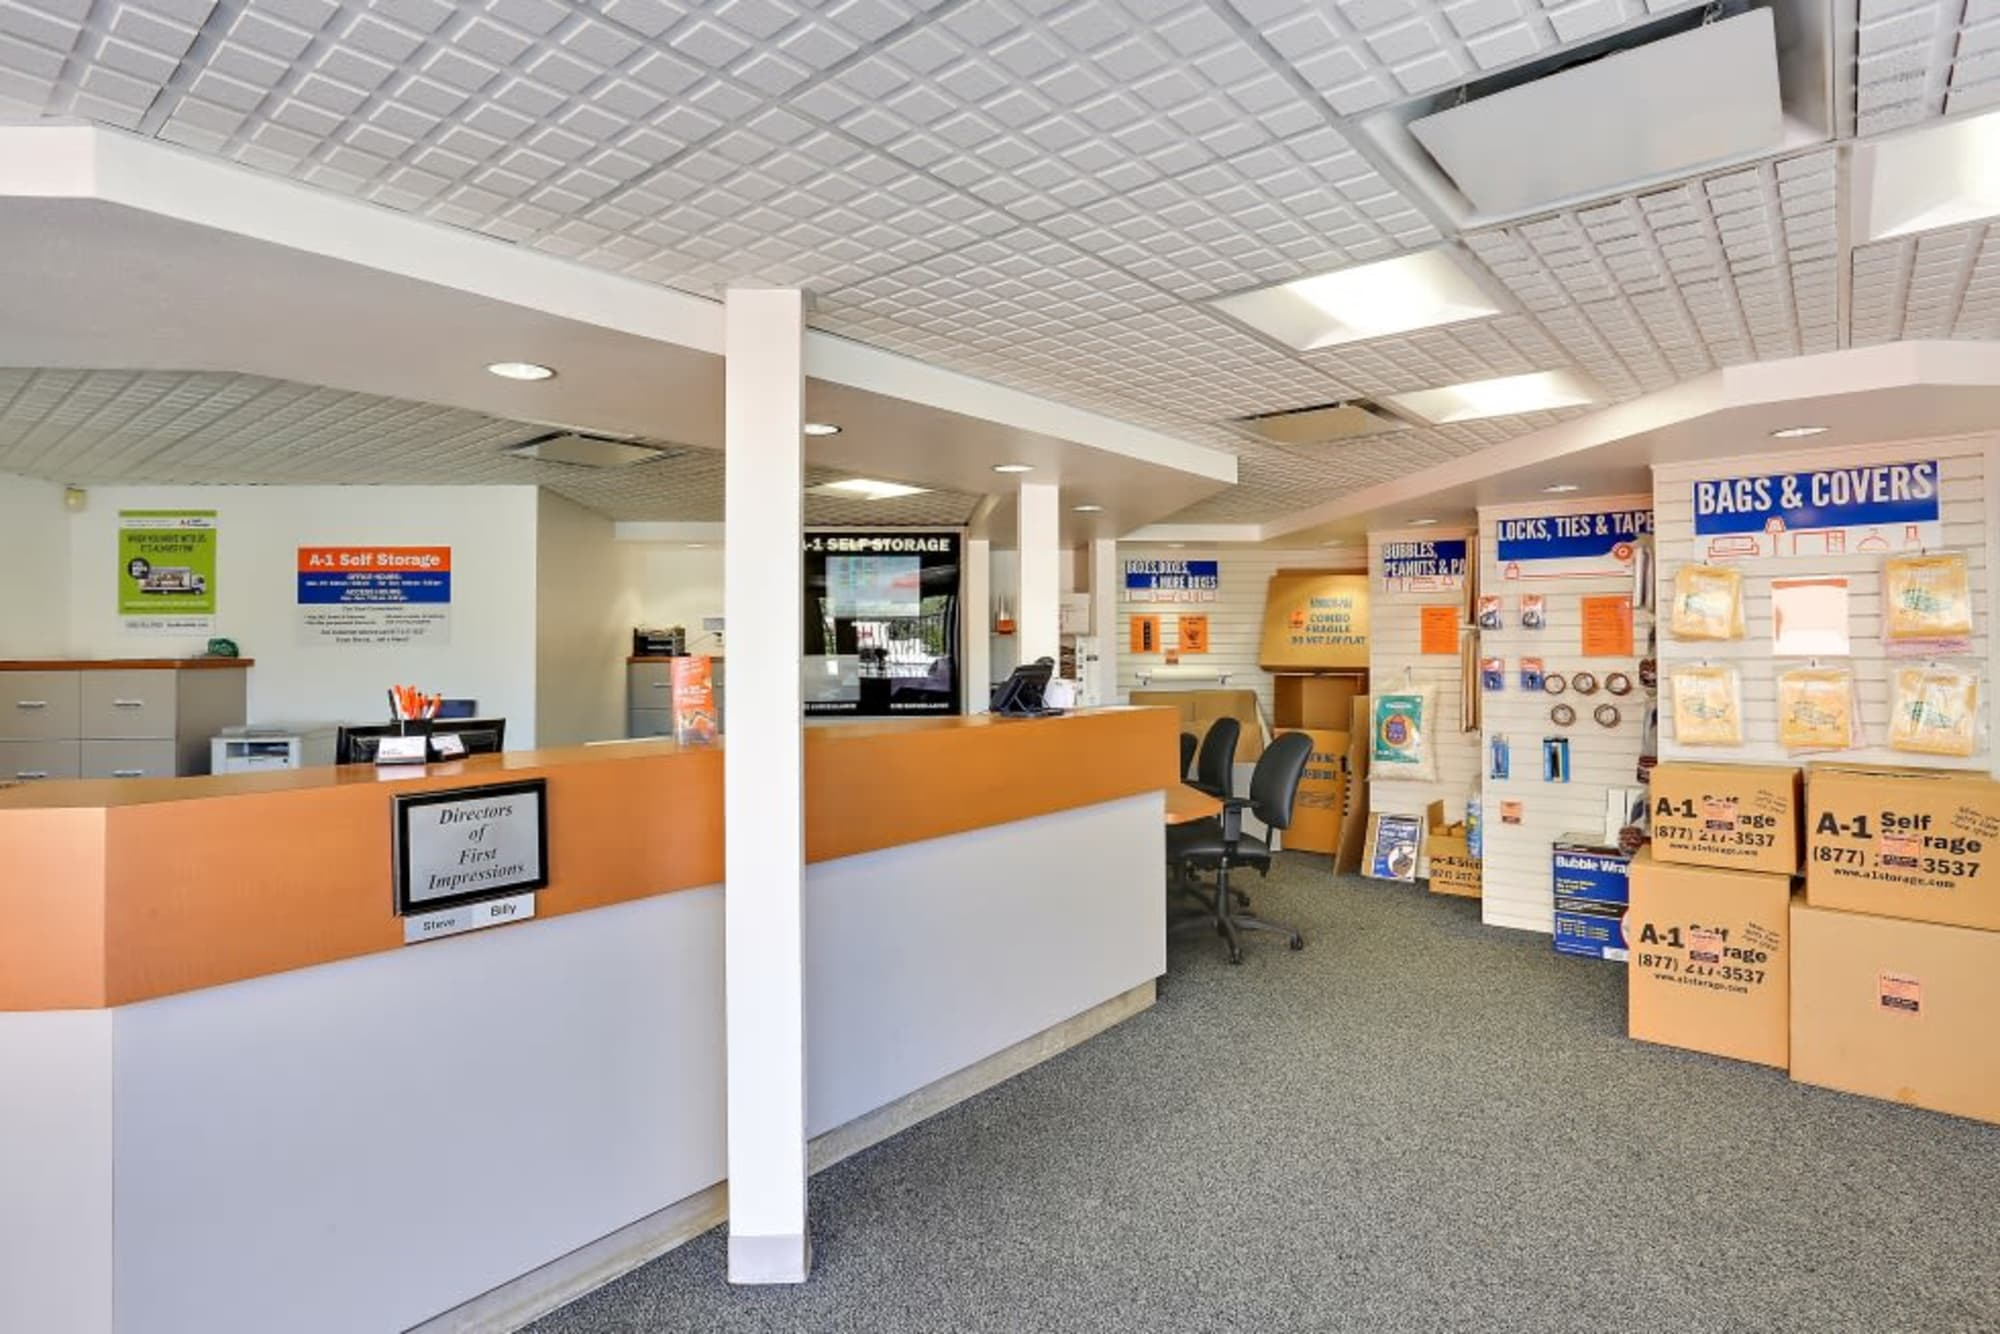 The front office of A-1 Self Storage in Oceanside, California